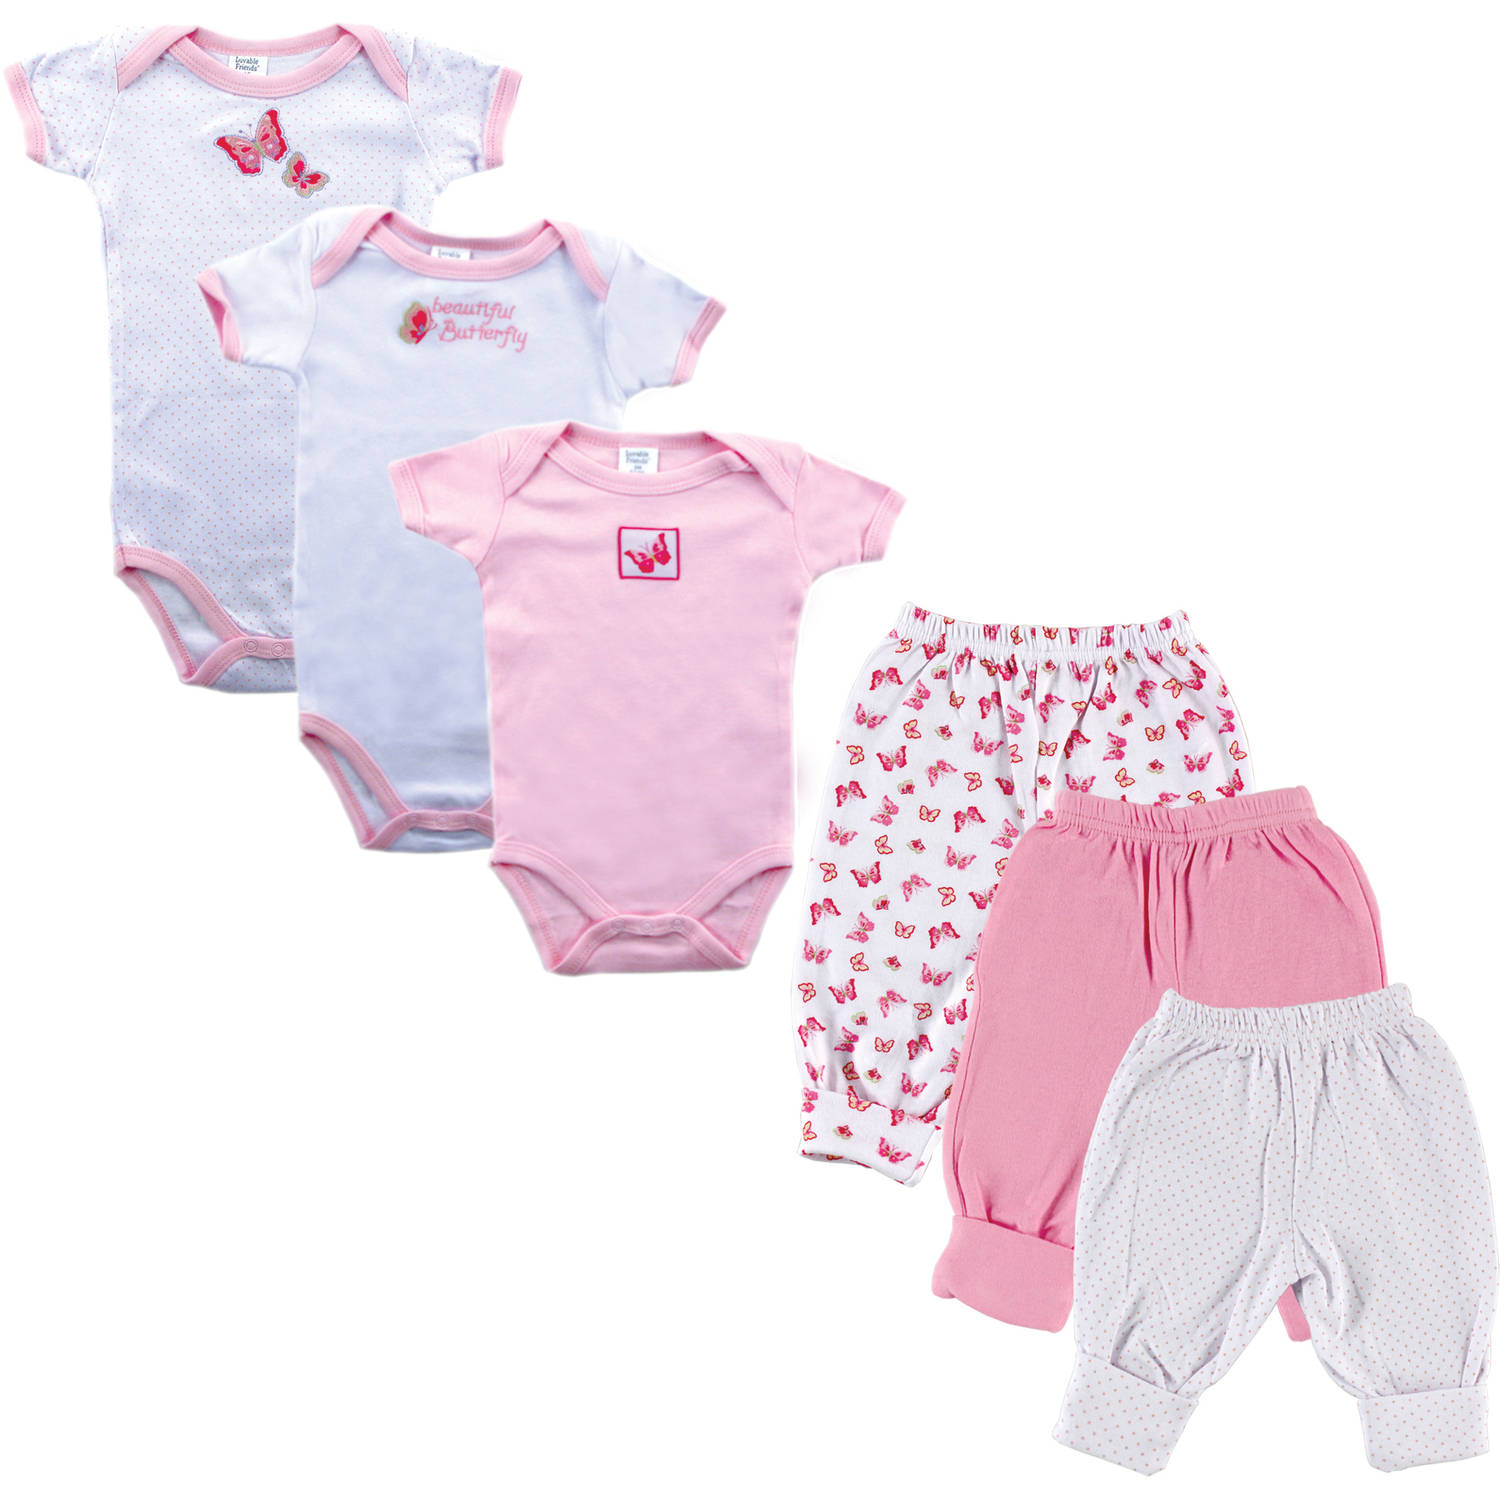 Newborn Baby Girl Grow with Me Layette 6-Piece Set, Pink